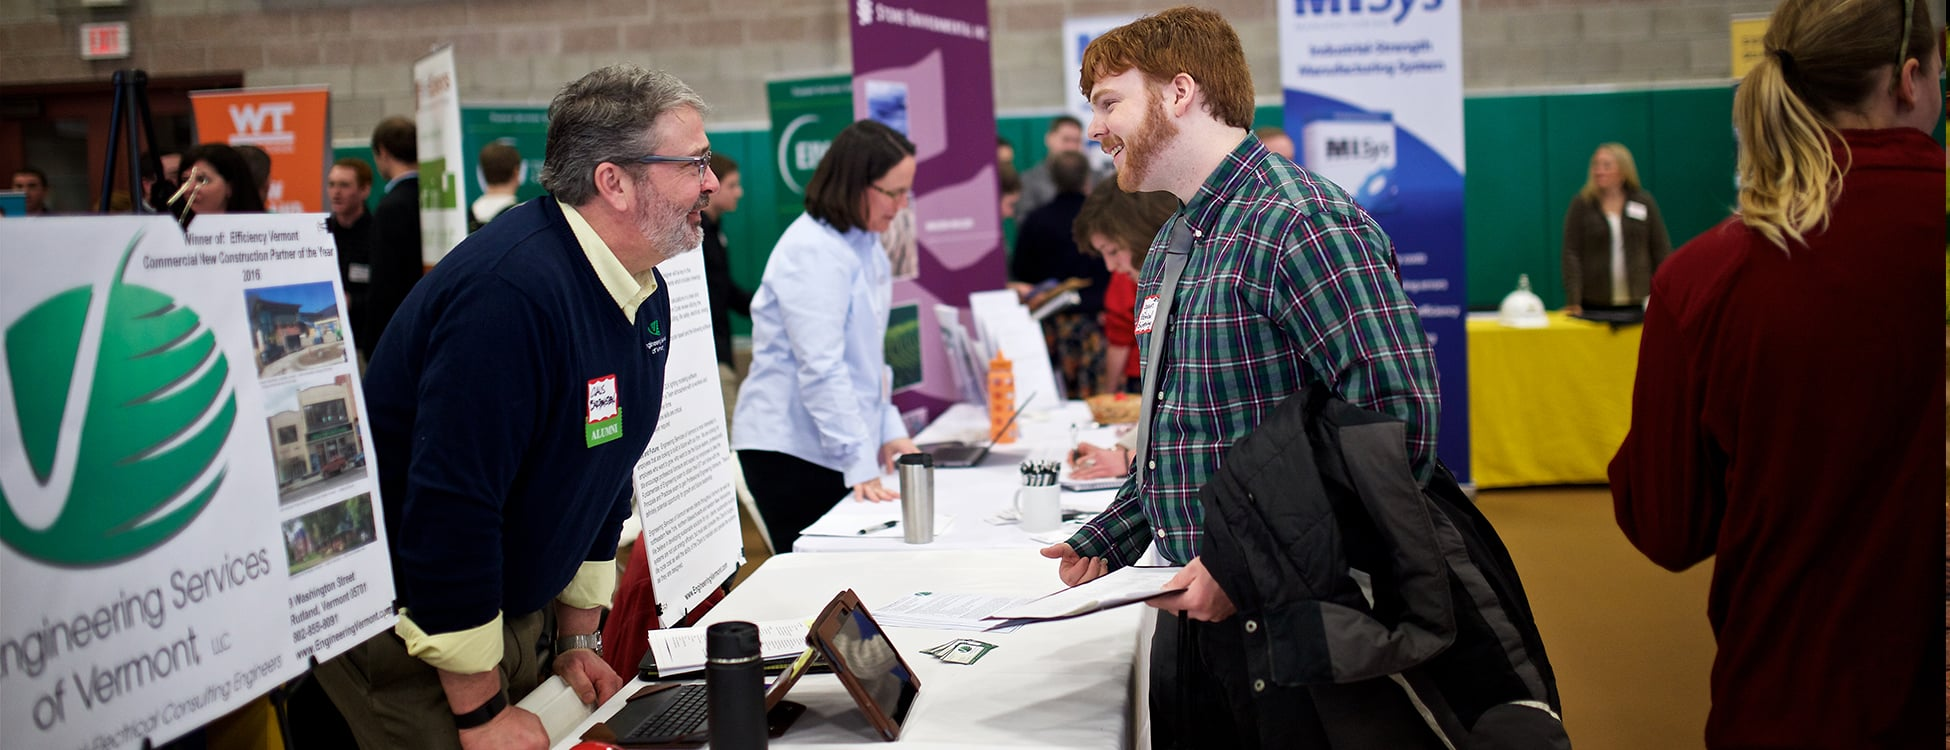 Career fair, Randolph Center campus, jobs